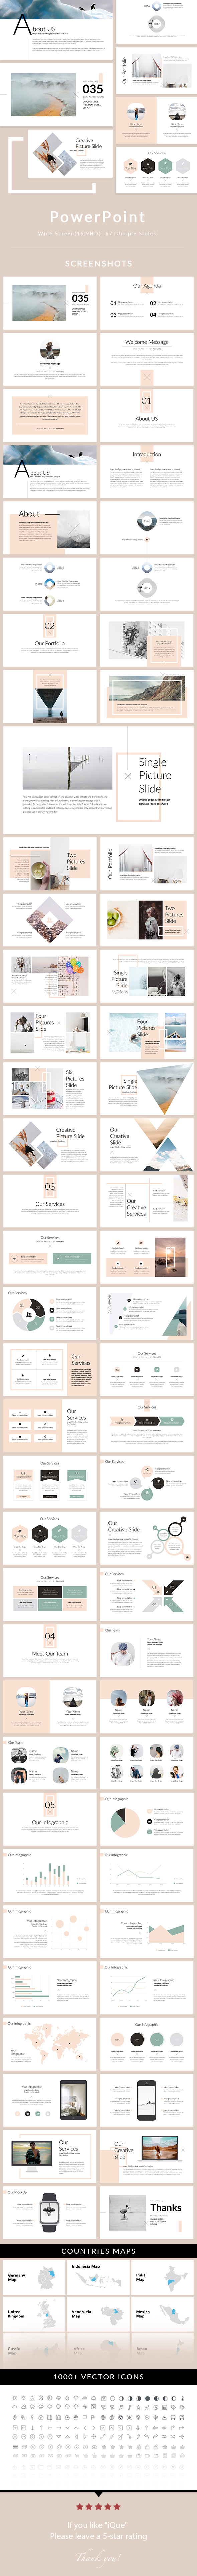 iQue - PowerPoint Presentation Template - Creative PowerPoint Templates